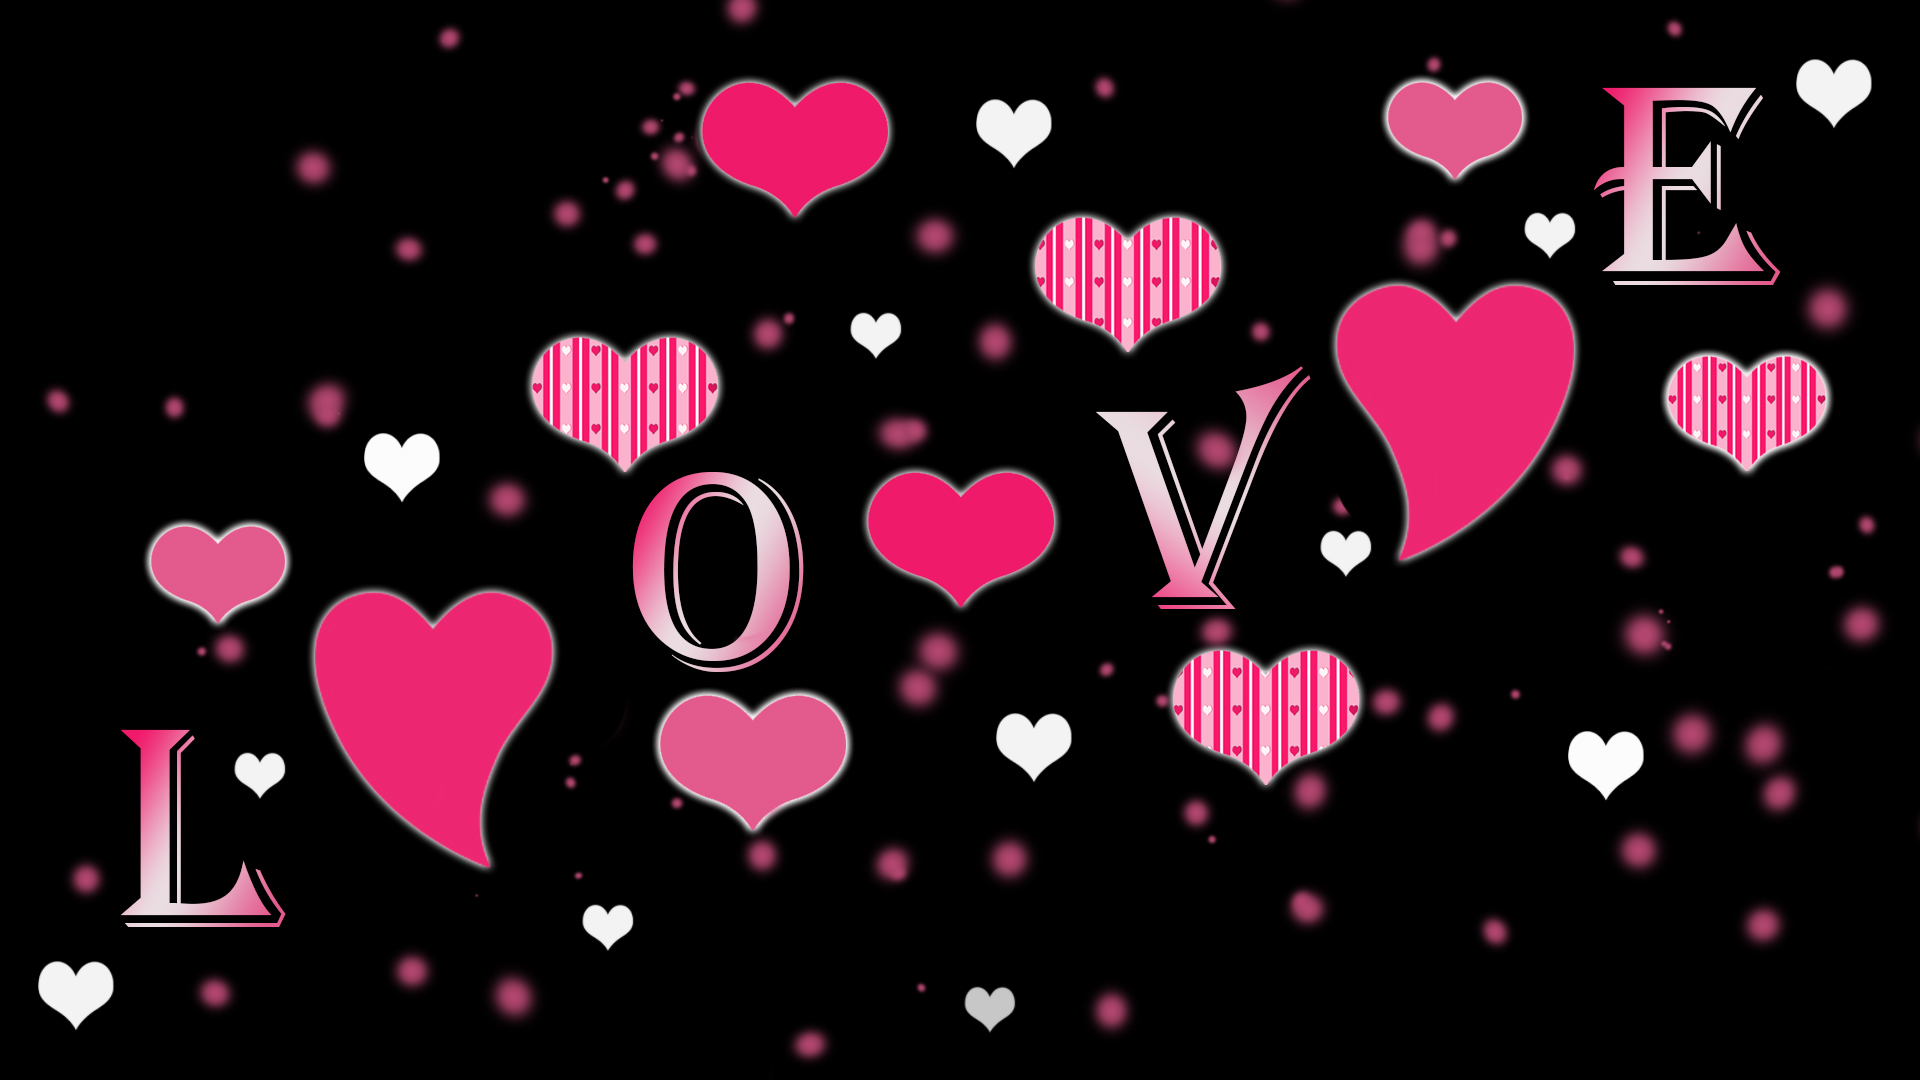 Love 3 Hd Wallpaper Background Image 1920x1080 Id 985501